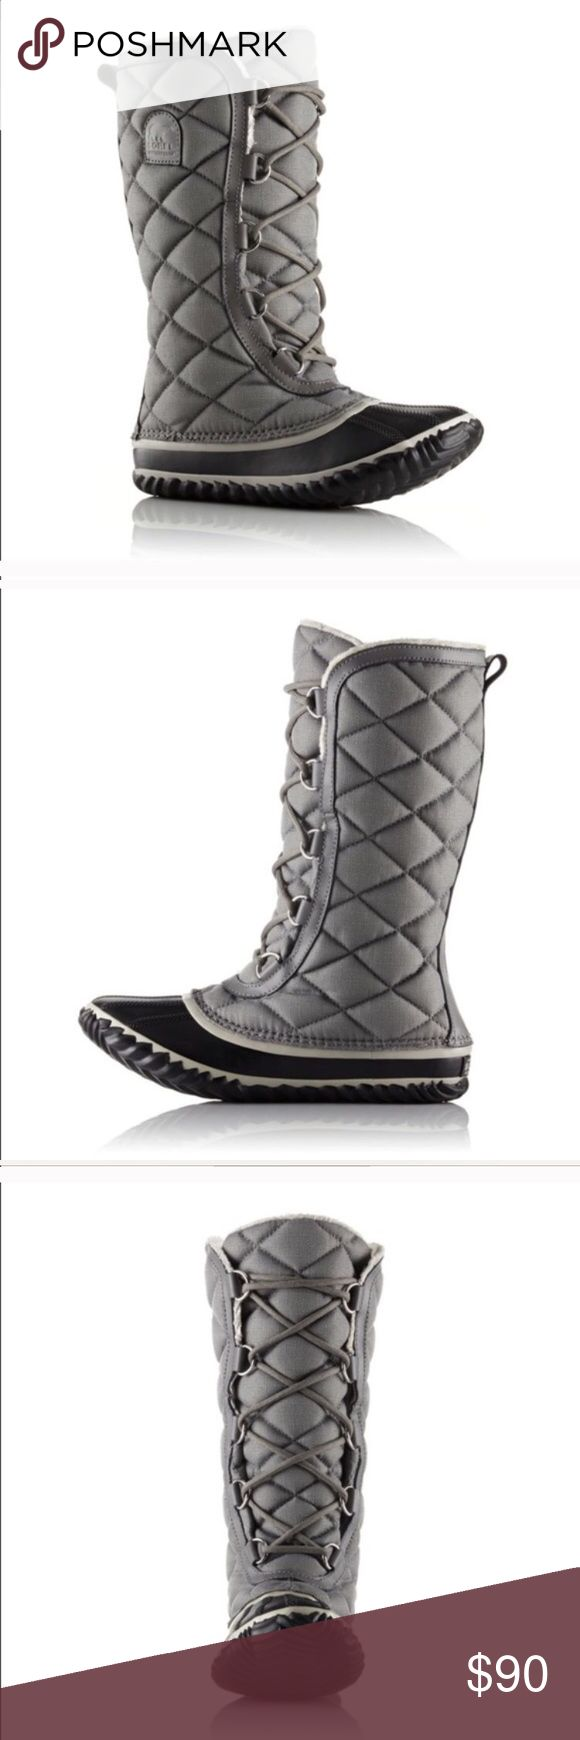 SOREL Outand about Boots NWT Full length quilting atop a handcrafted, vulcanized rubber sets this waterproof boot apart from any other. The microfleece lining is super soft and the heringbone sole gives extra traction. Size 12 C/D.Approx shaft height 11.5 in. 🍀 NO TRADES. 24 hour holds only. Please submit any offers via the Offer Button. I will NOT negotiate prices in comments. Happy Poshing! 🍀 Sorel Shoes Winter & Rain Boots